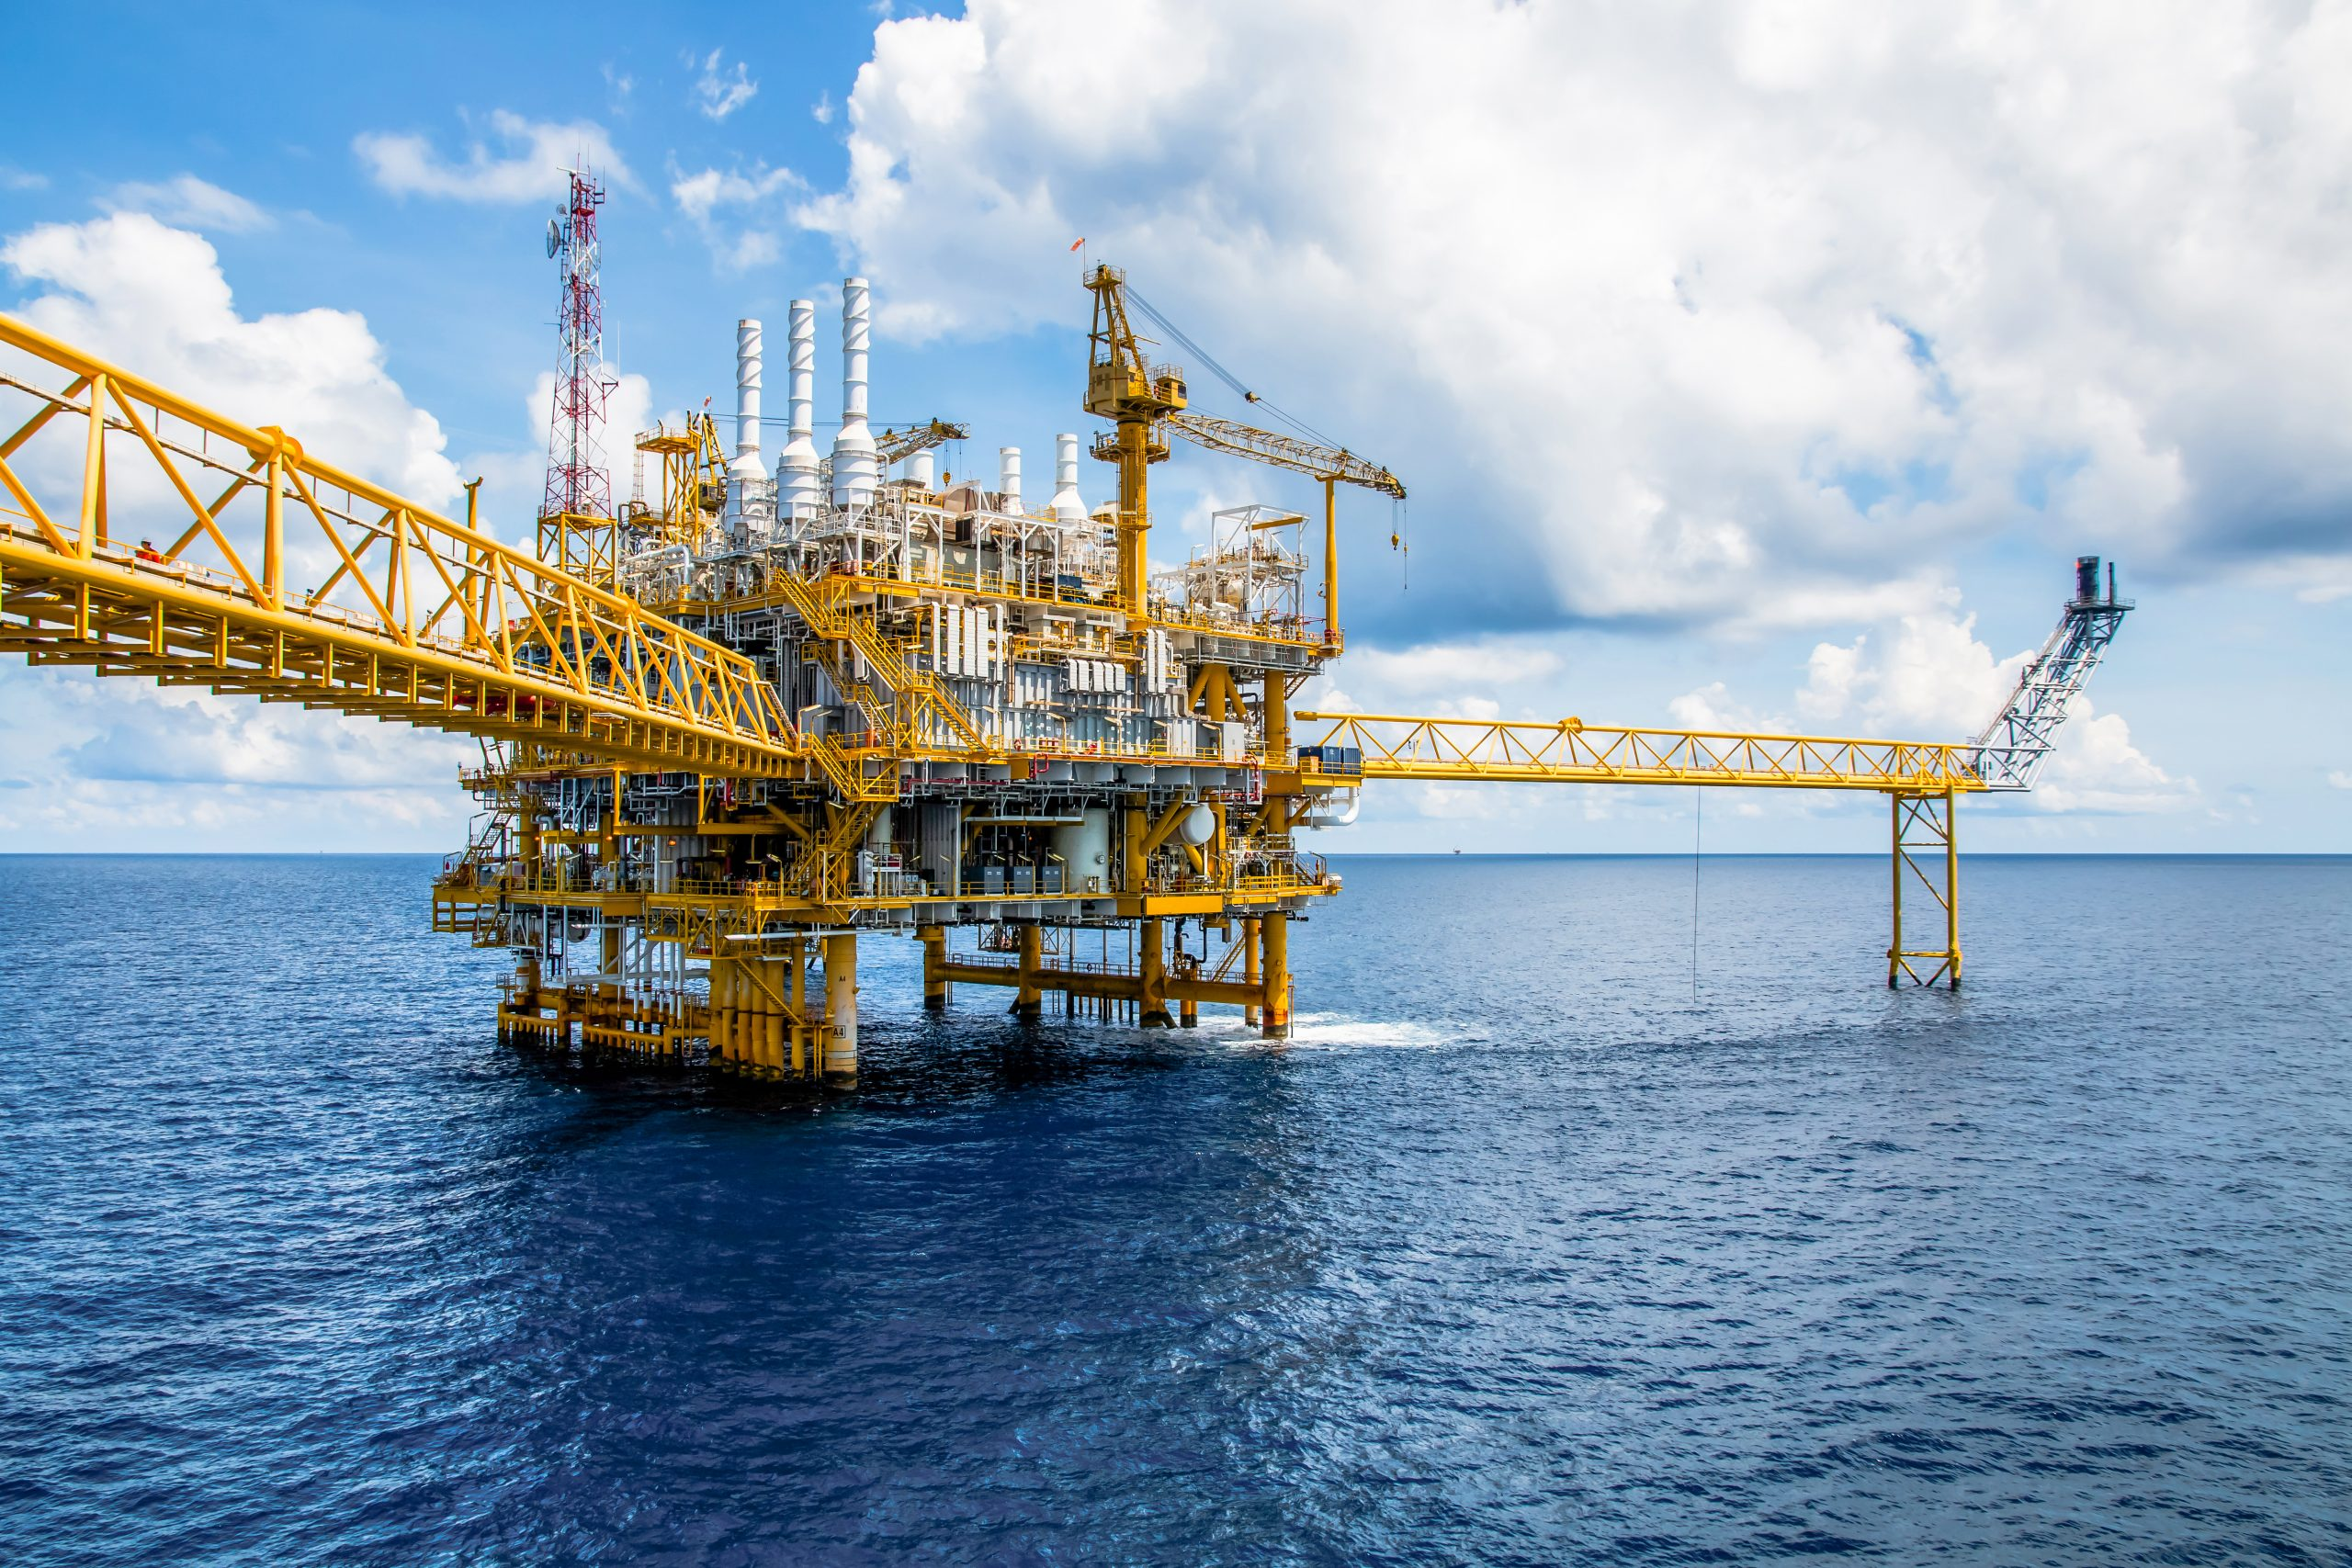 Picture of an offshore construction platform for the oil and gas industry